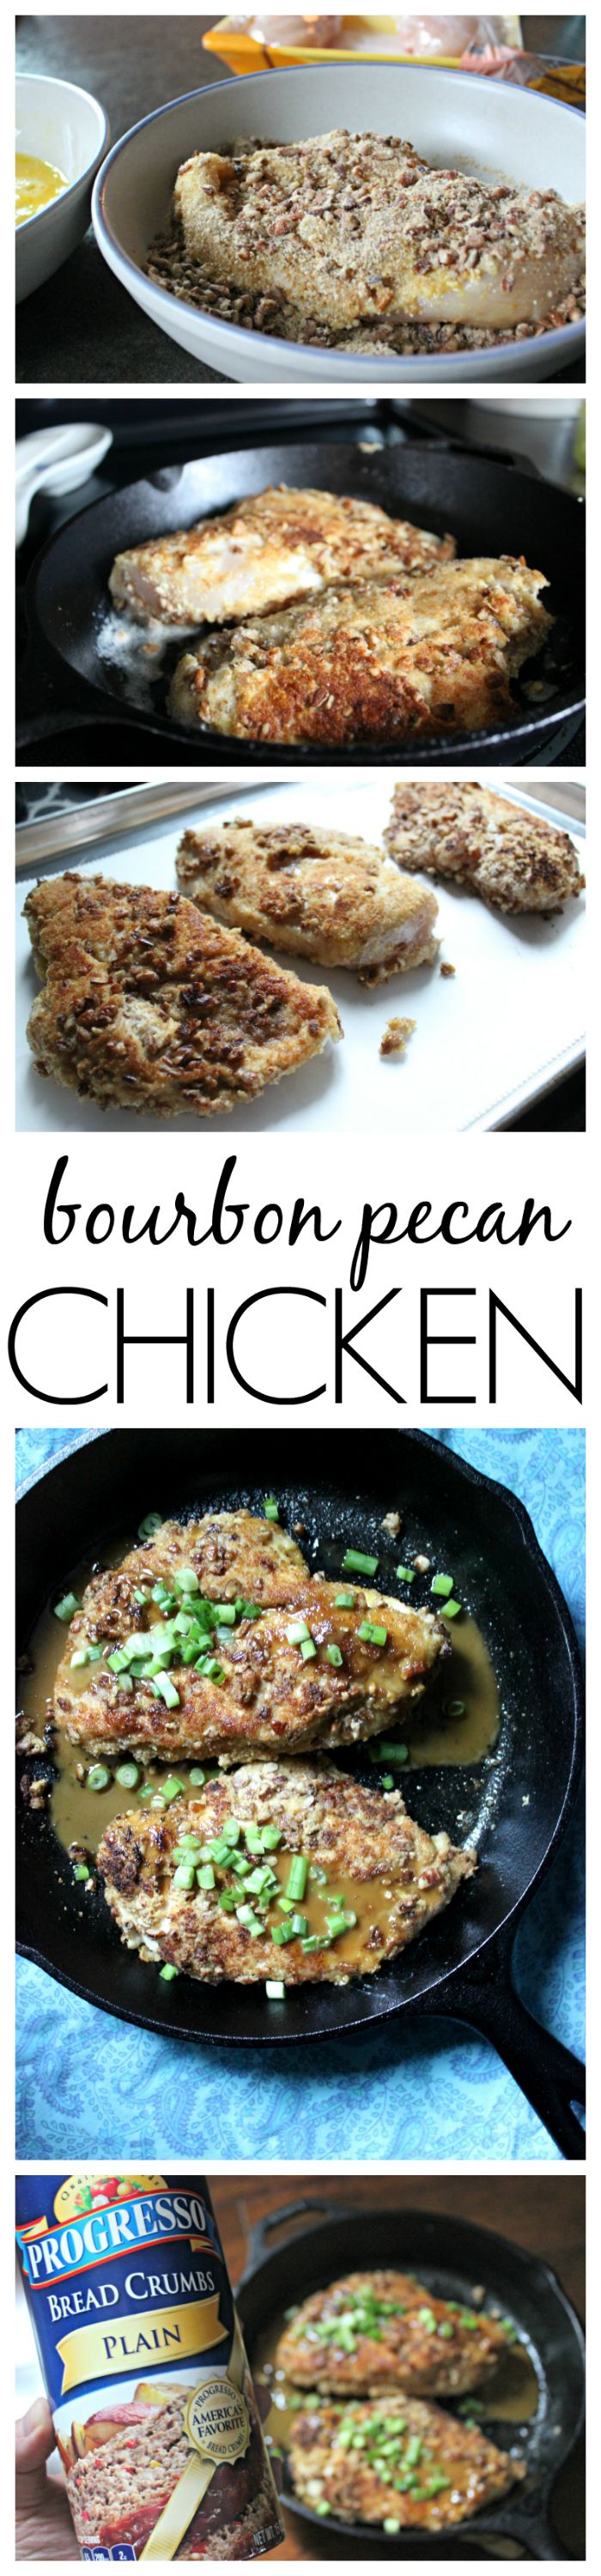 If you're looking for comfort food that can wow a crowd and is easy to make - then you have to make this easy bourbon pecan chicken recipe.  Made with Progresso bread crumbs, pecans and of course bourbon, in 30 minutes you'll be ready to serve dinner and everyone will be asking you for the recipe!  #sponsored